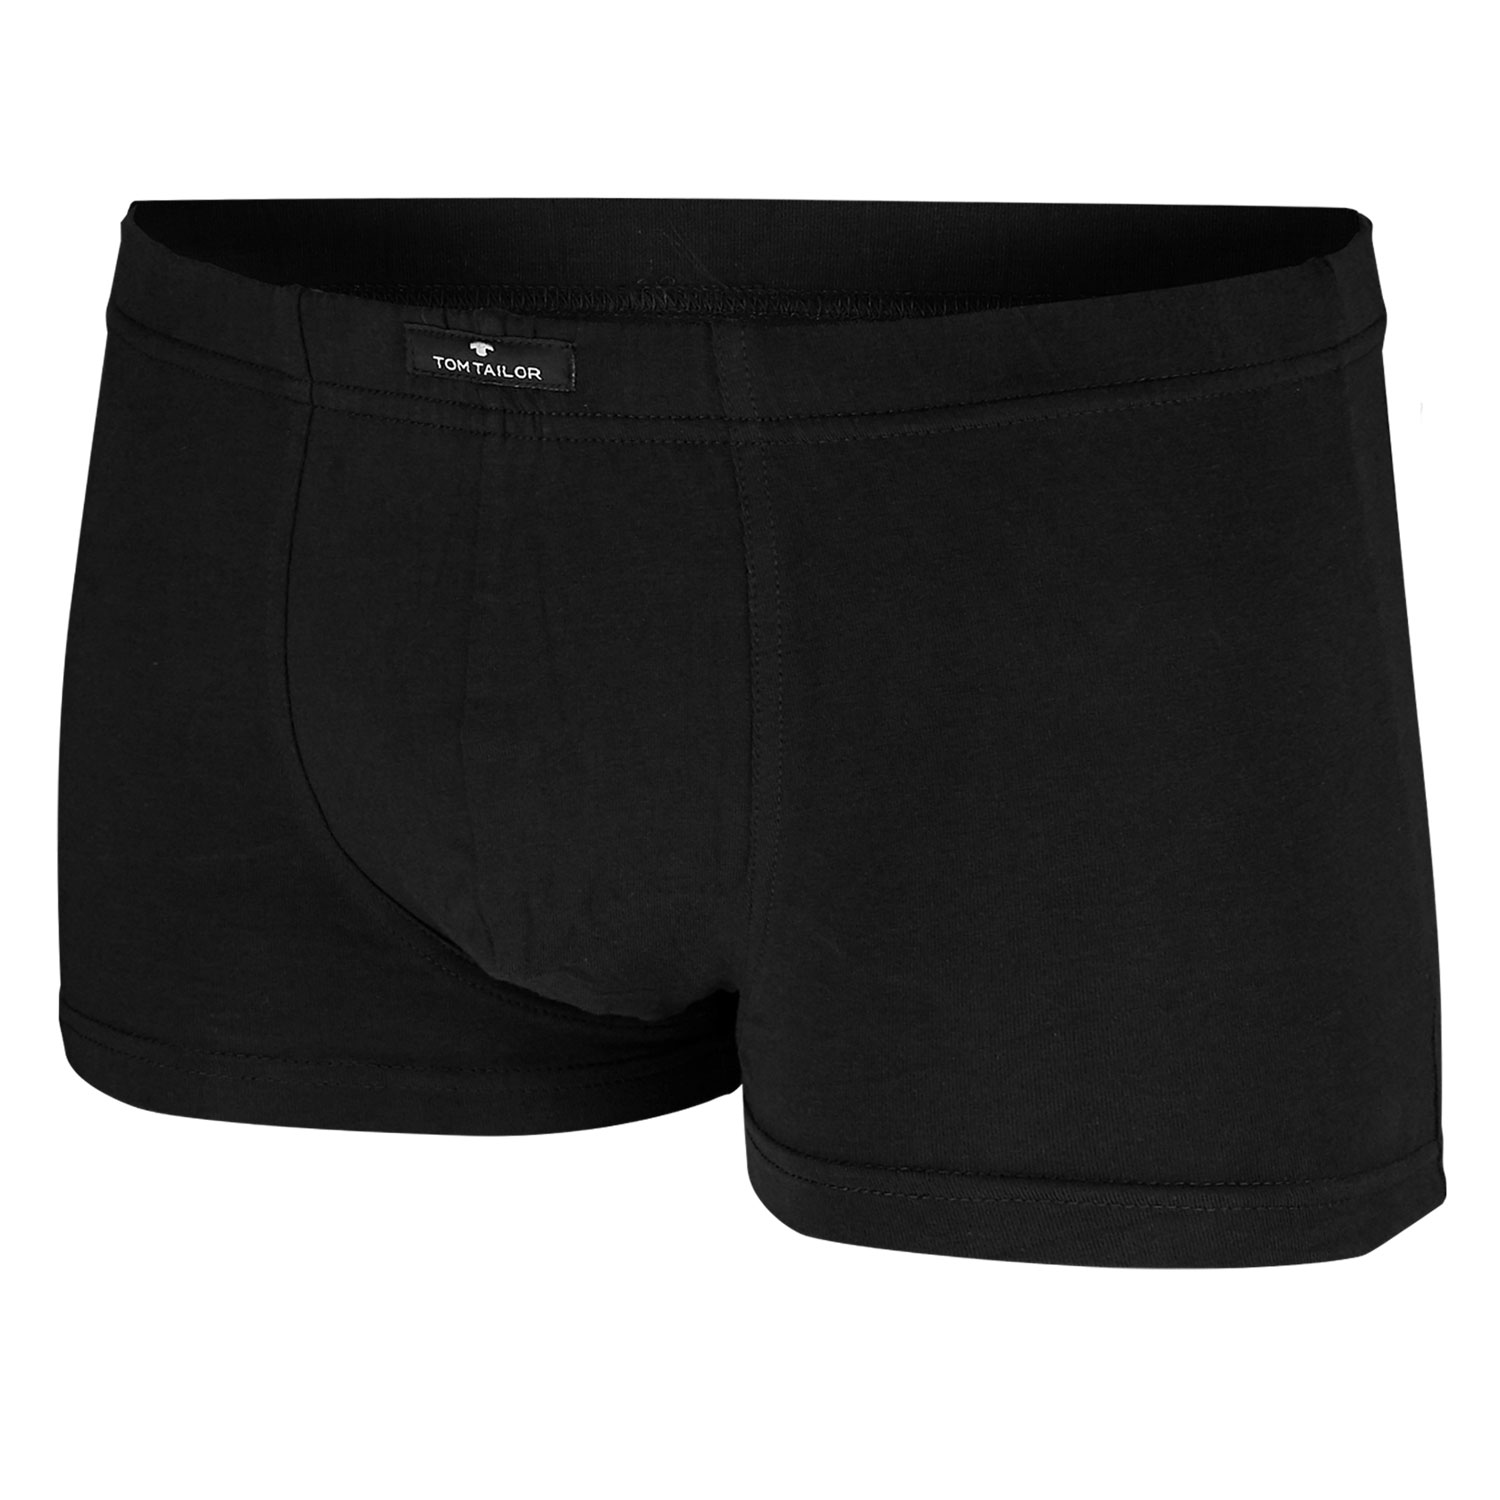 Tom Tailor Boxershorts 3er Pack Briefs Pants farbig schwarz – Bild 3